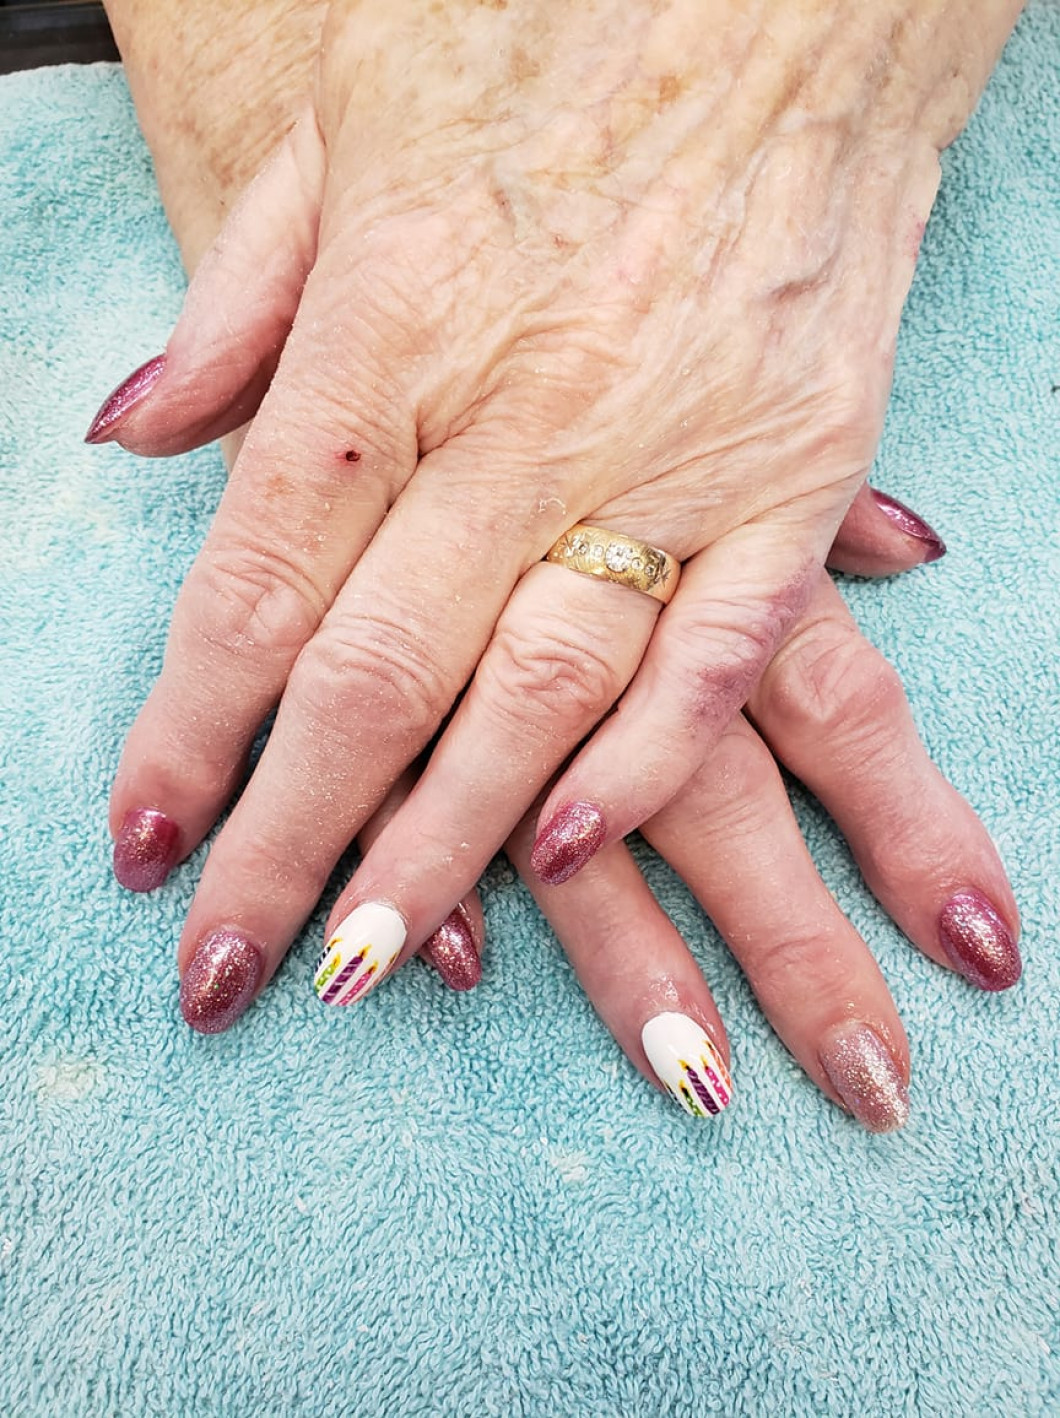 Browse the nail services that we offer: